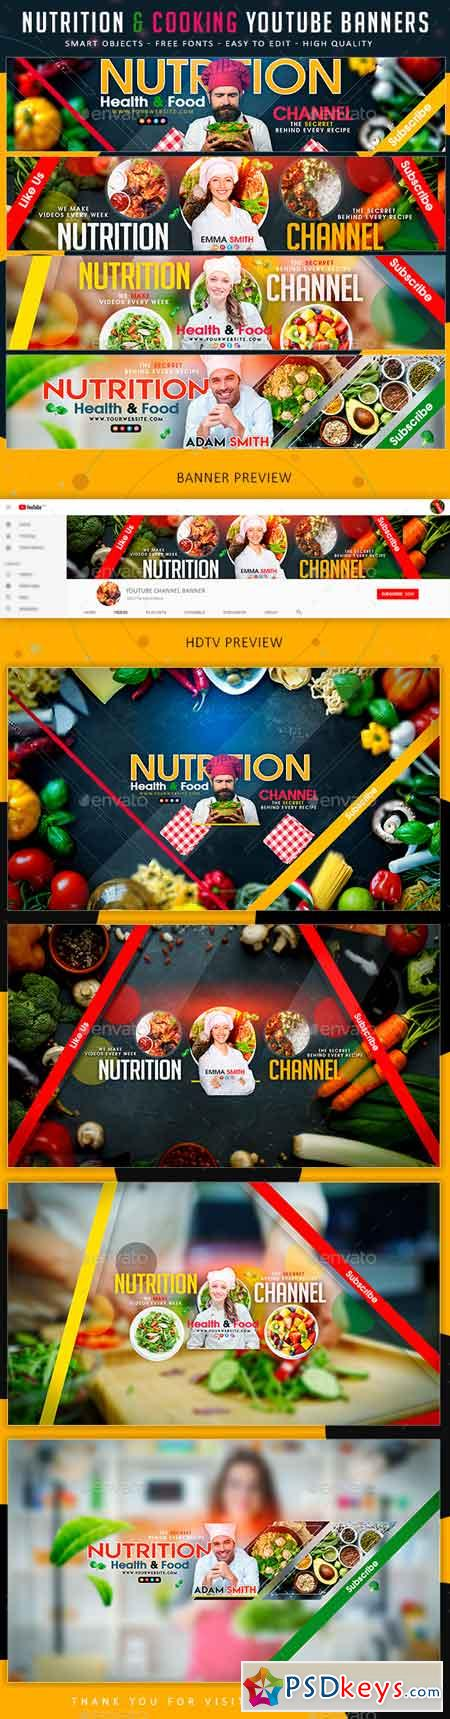 Nutrition & Cooking YouTube Banner 21925512